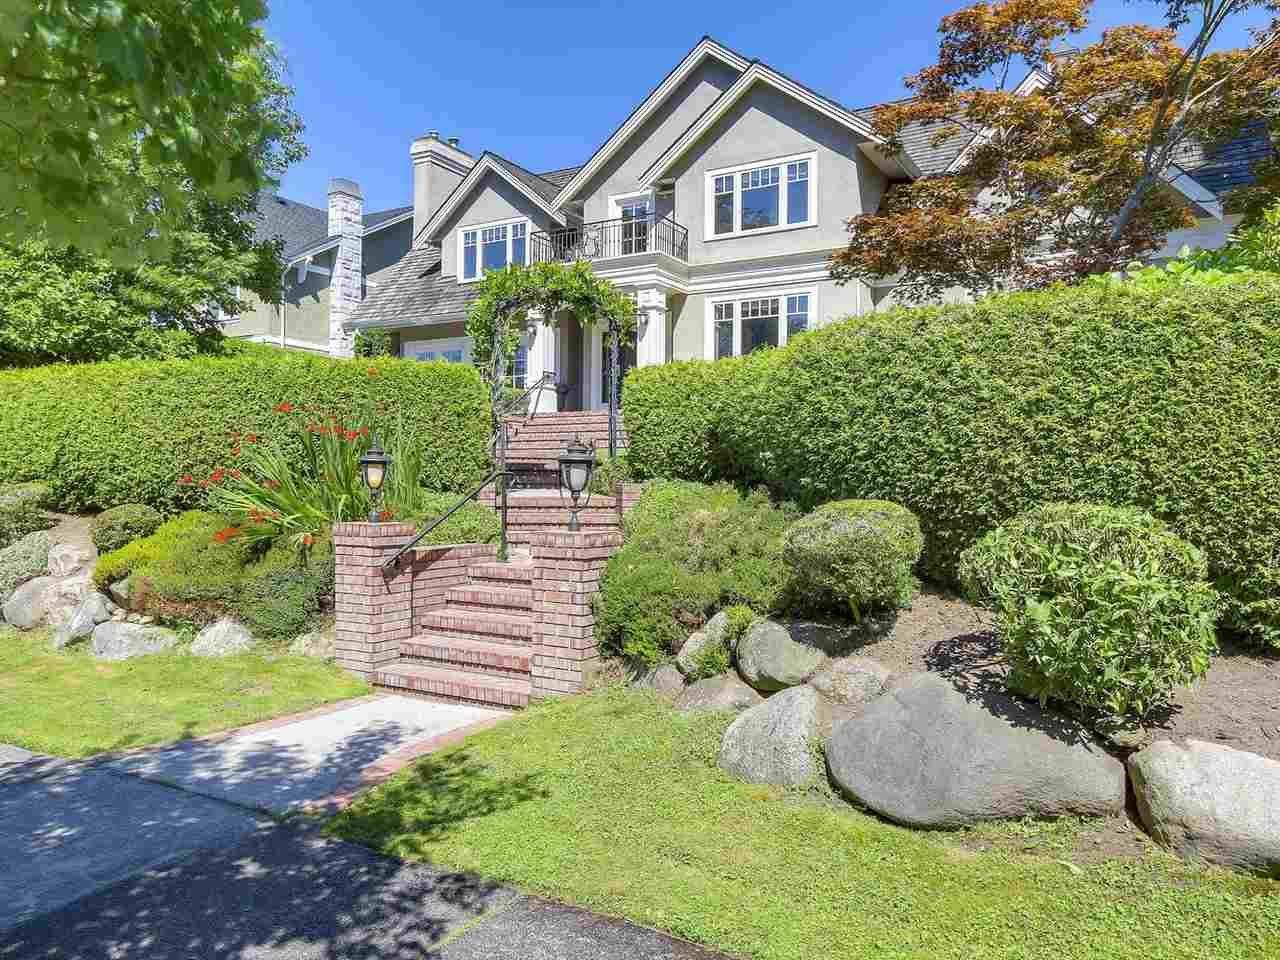 Detached at 4588 PINE CRESCENT, Vancouver West, British Columbia. Image 1